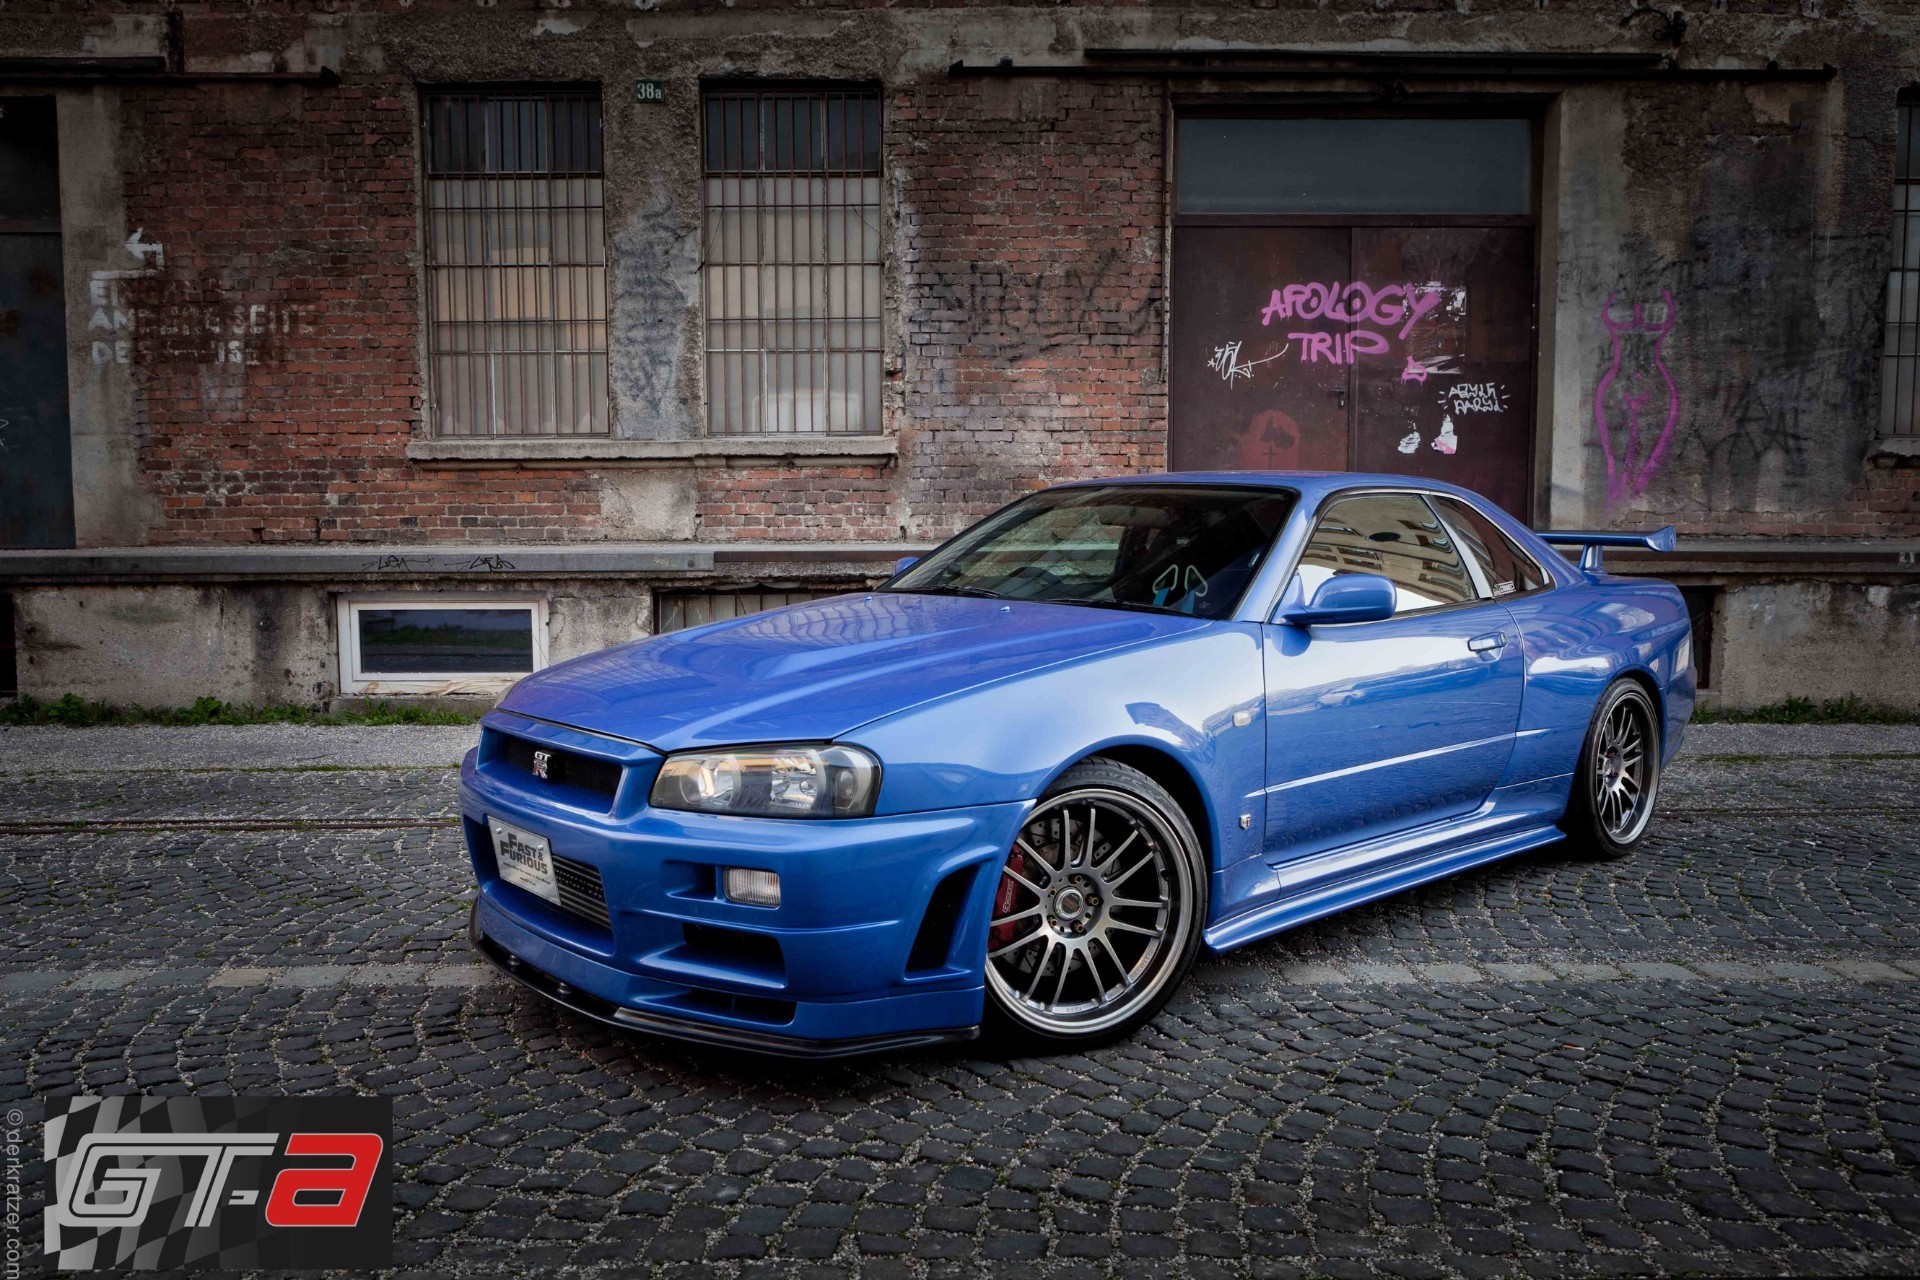 Paul walker 39 s 39 fast furious 4 39 r34 nissan gt r for sale for Newspaper wallpaper for sale